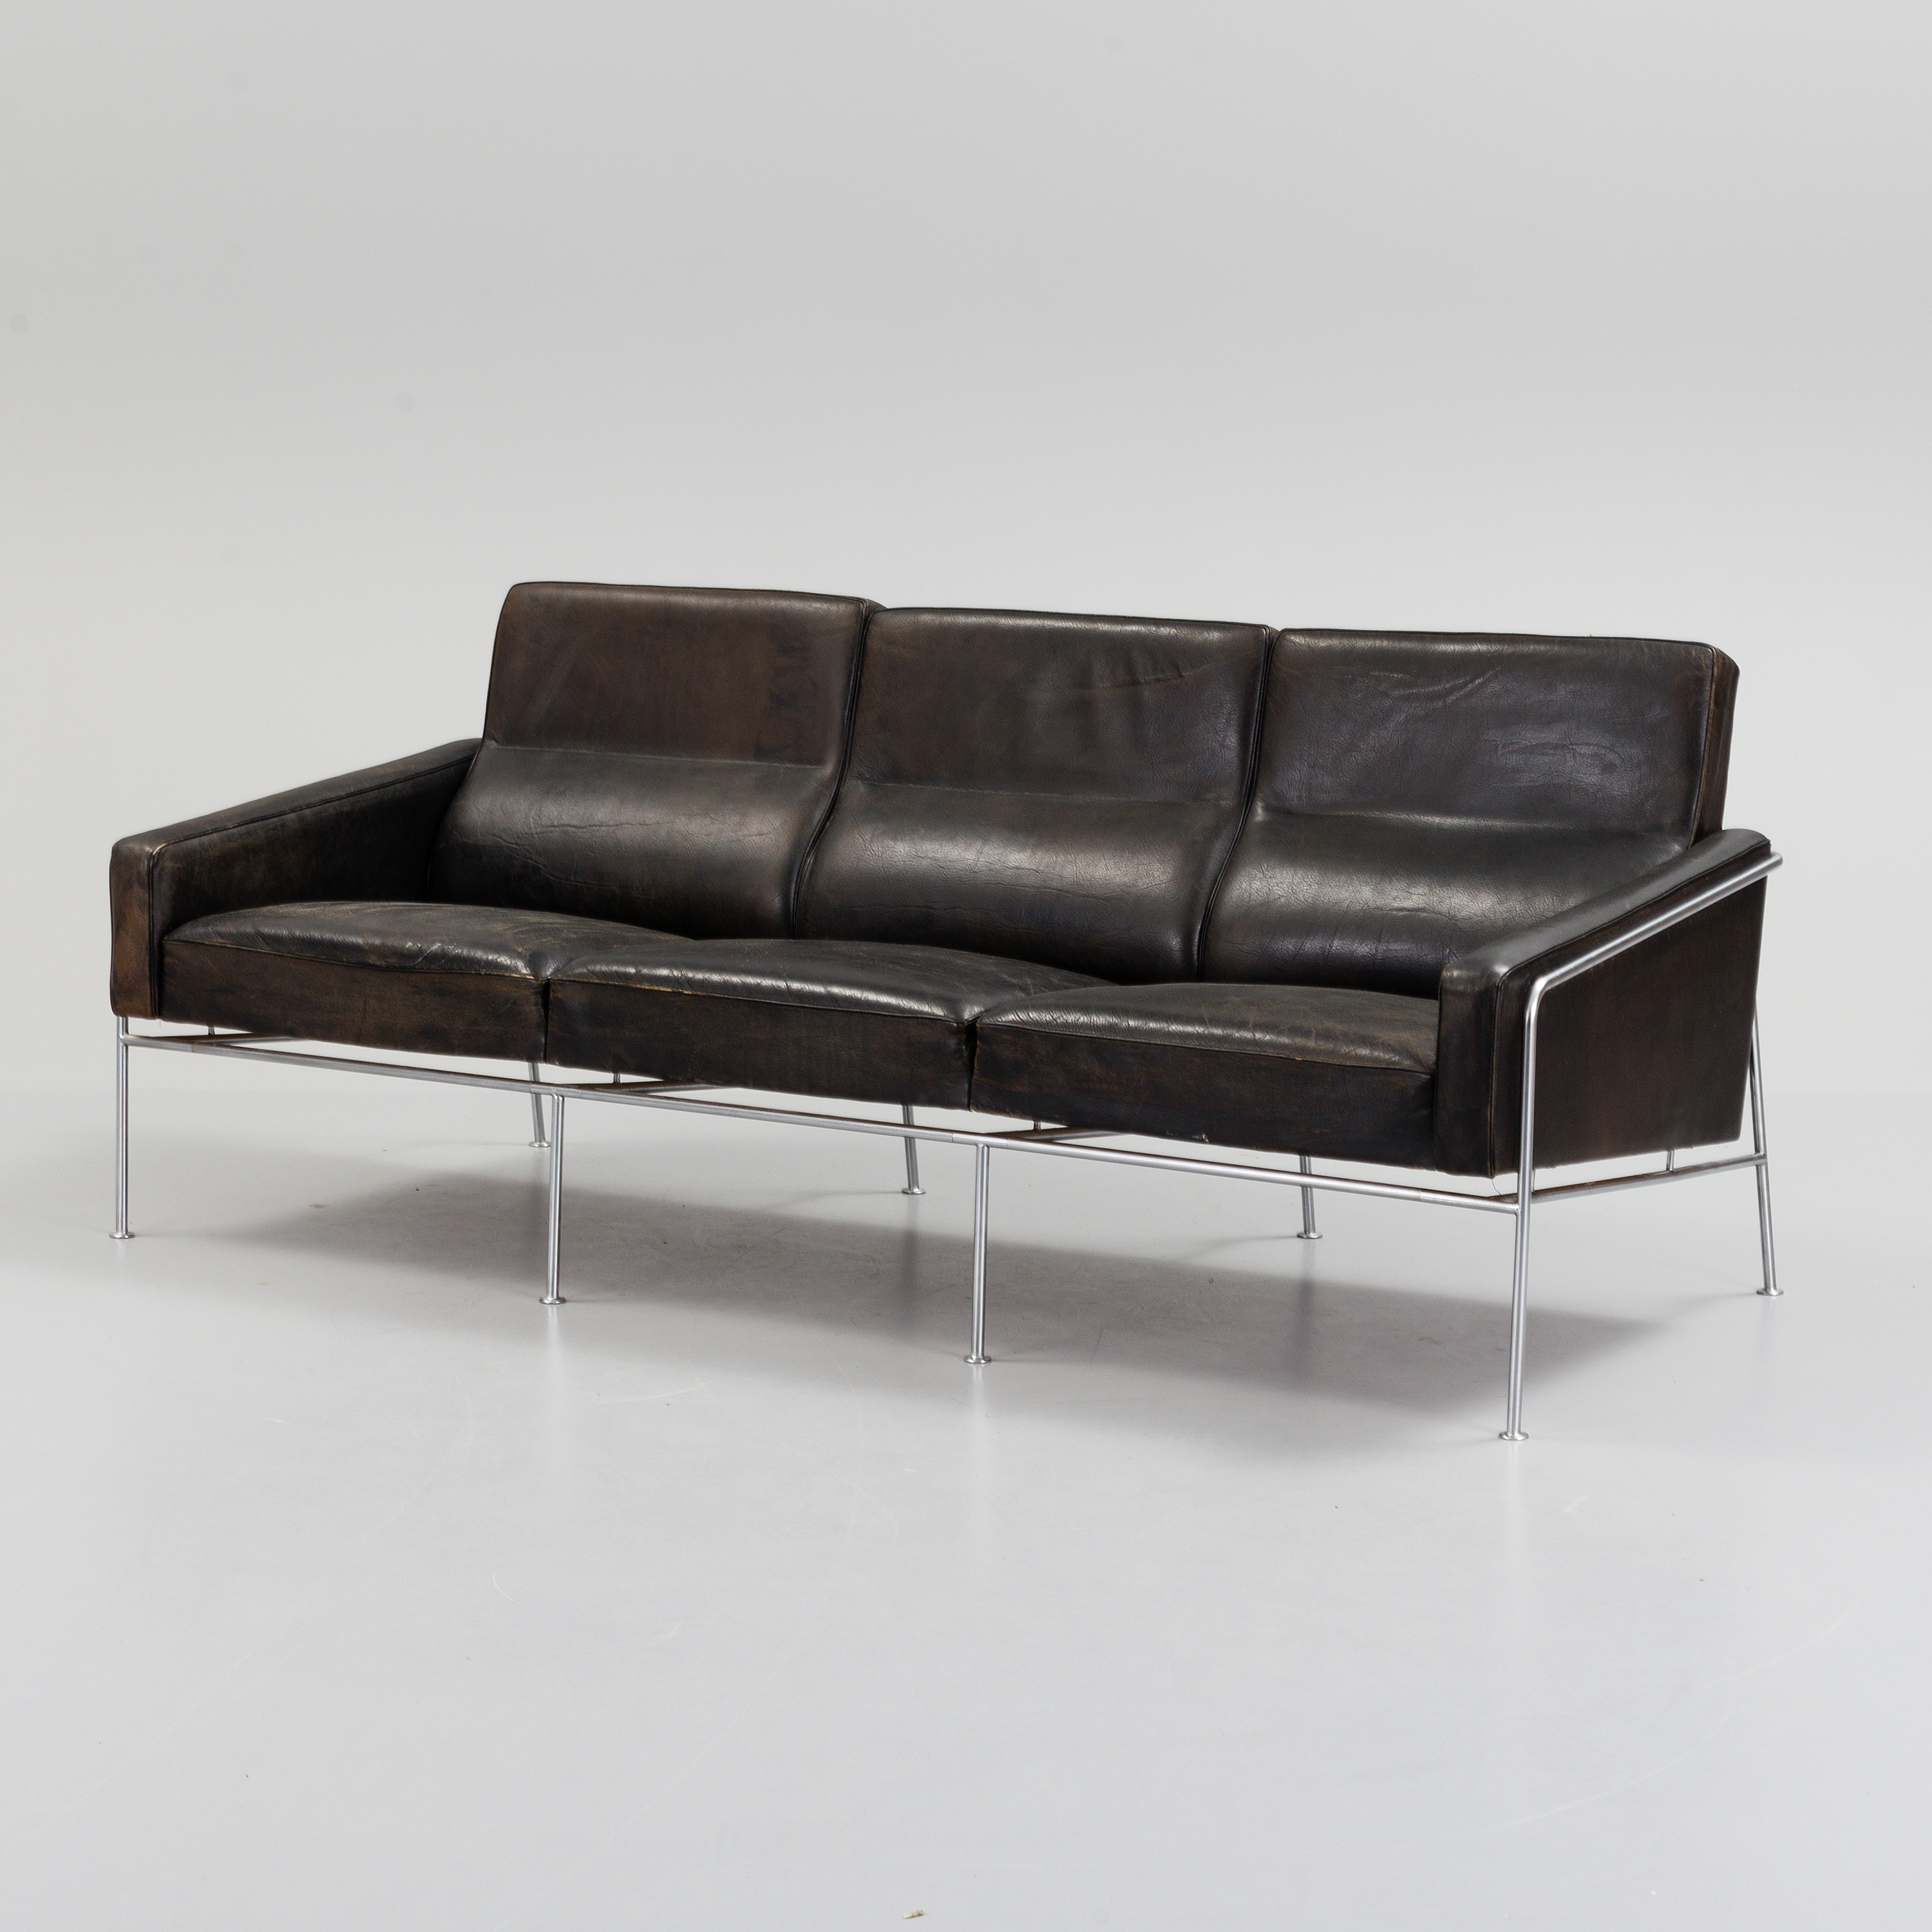 Jacobsen Sofa Bed With Storage Chaise